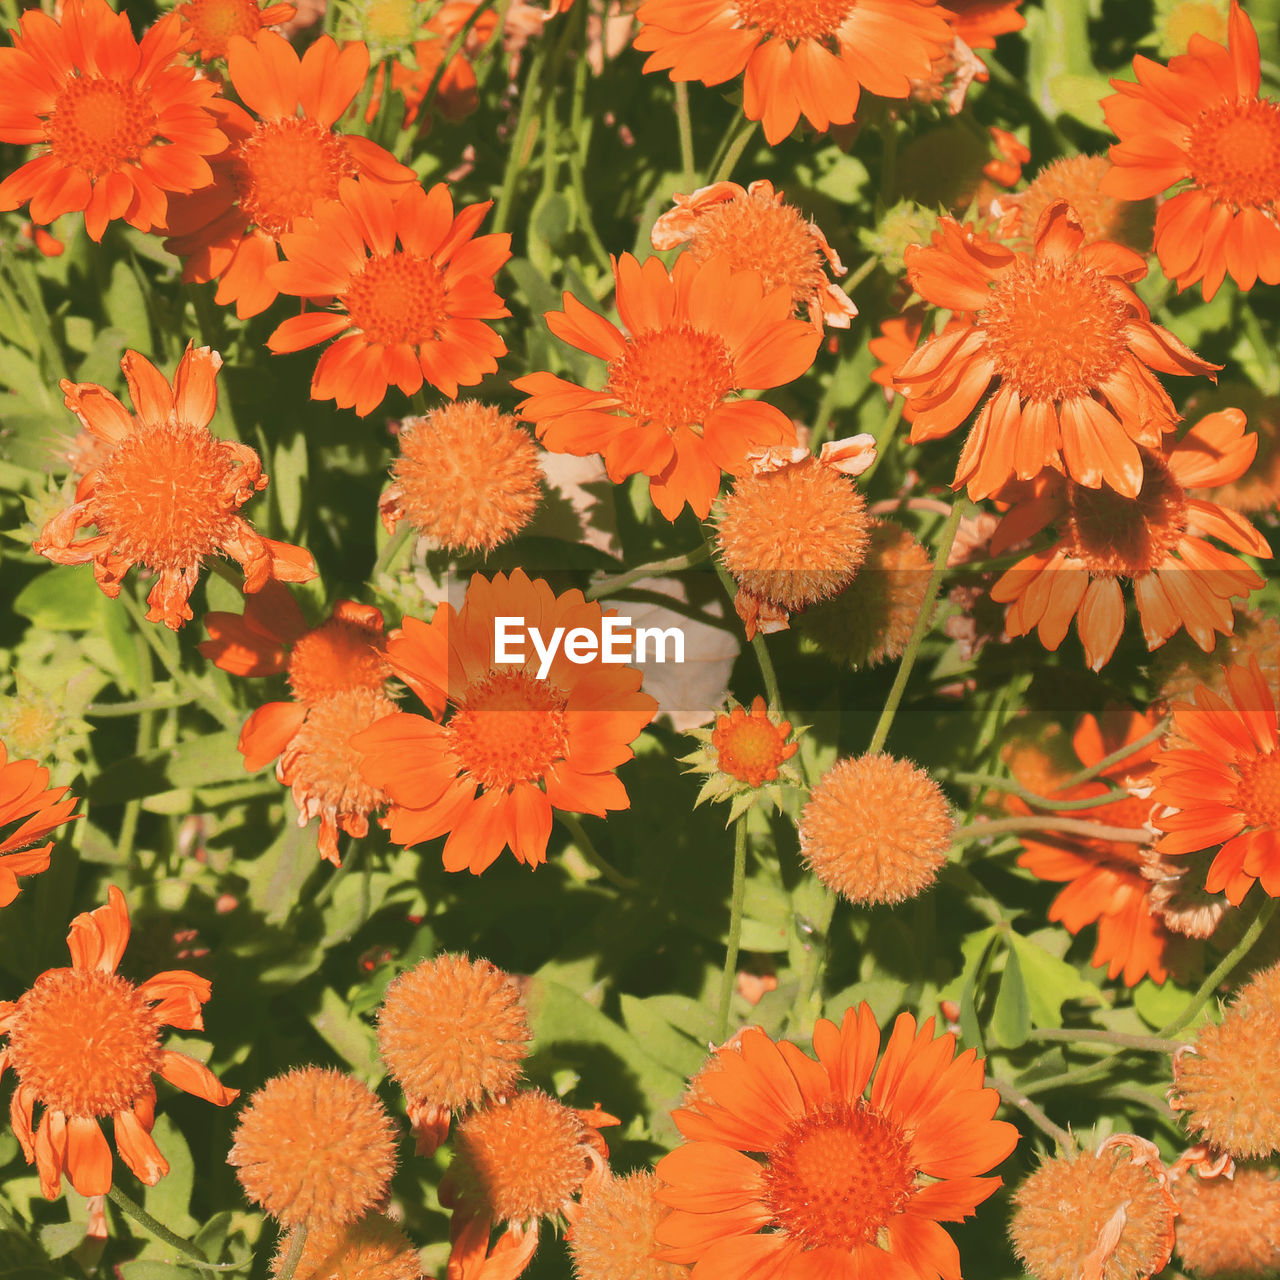 flower, orange color, beauty in nature, nature, growth, fragility, plant, no people, flower head, freshness, petal, outdoors, day, full frame, marigold, blooming, close-up